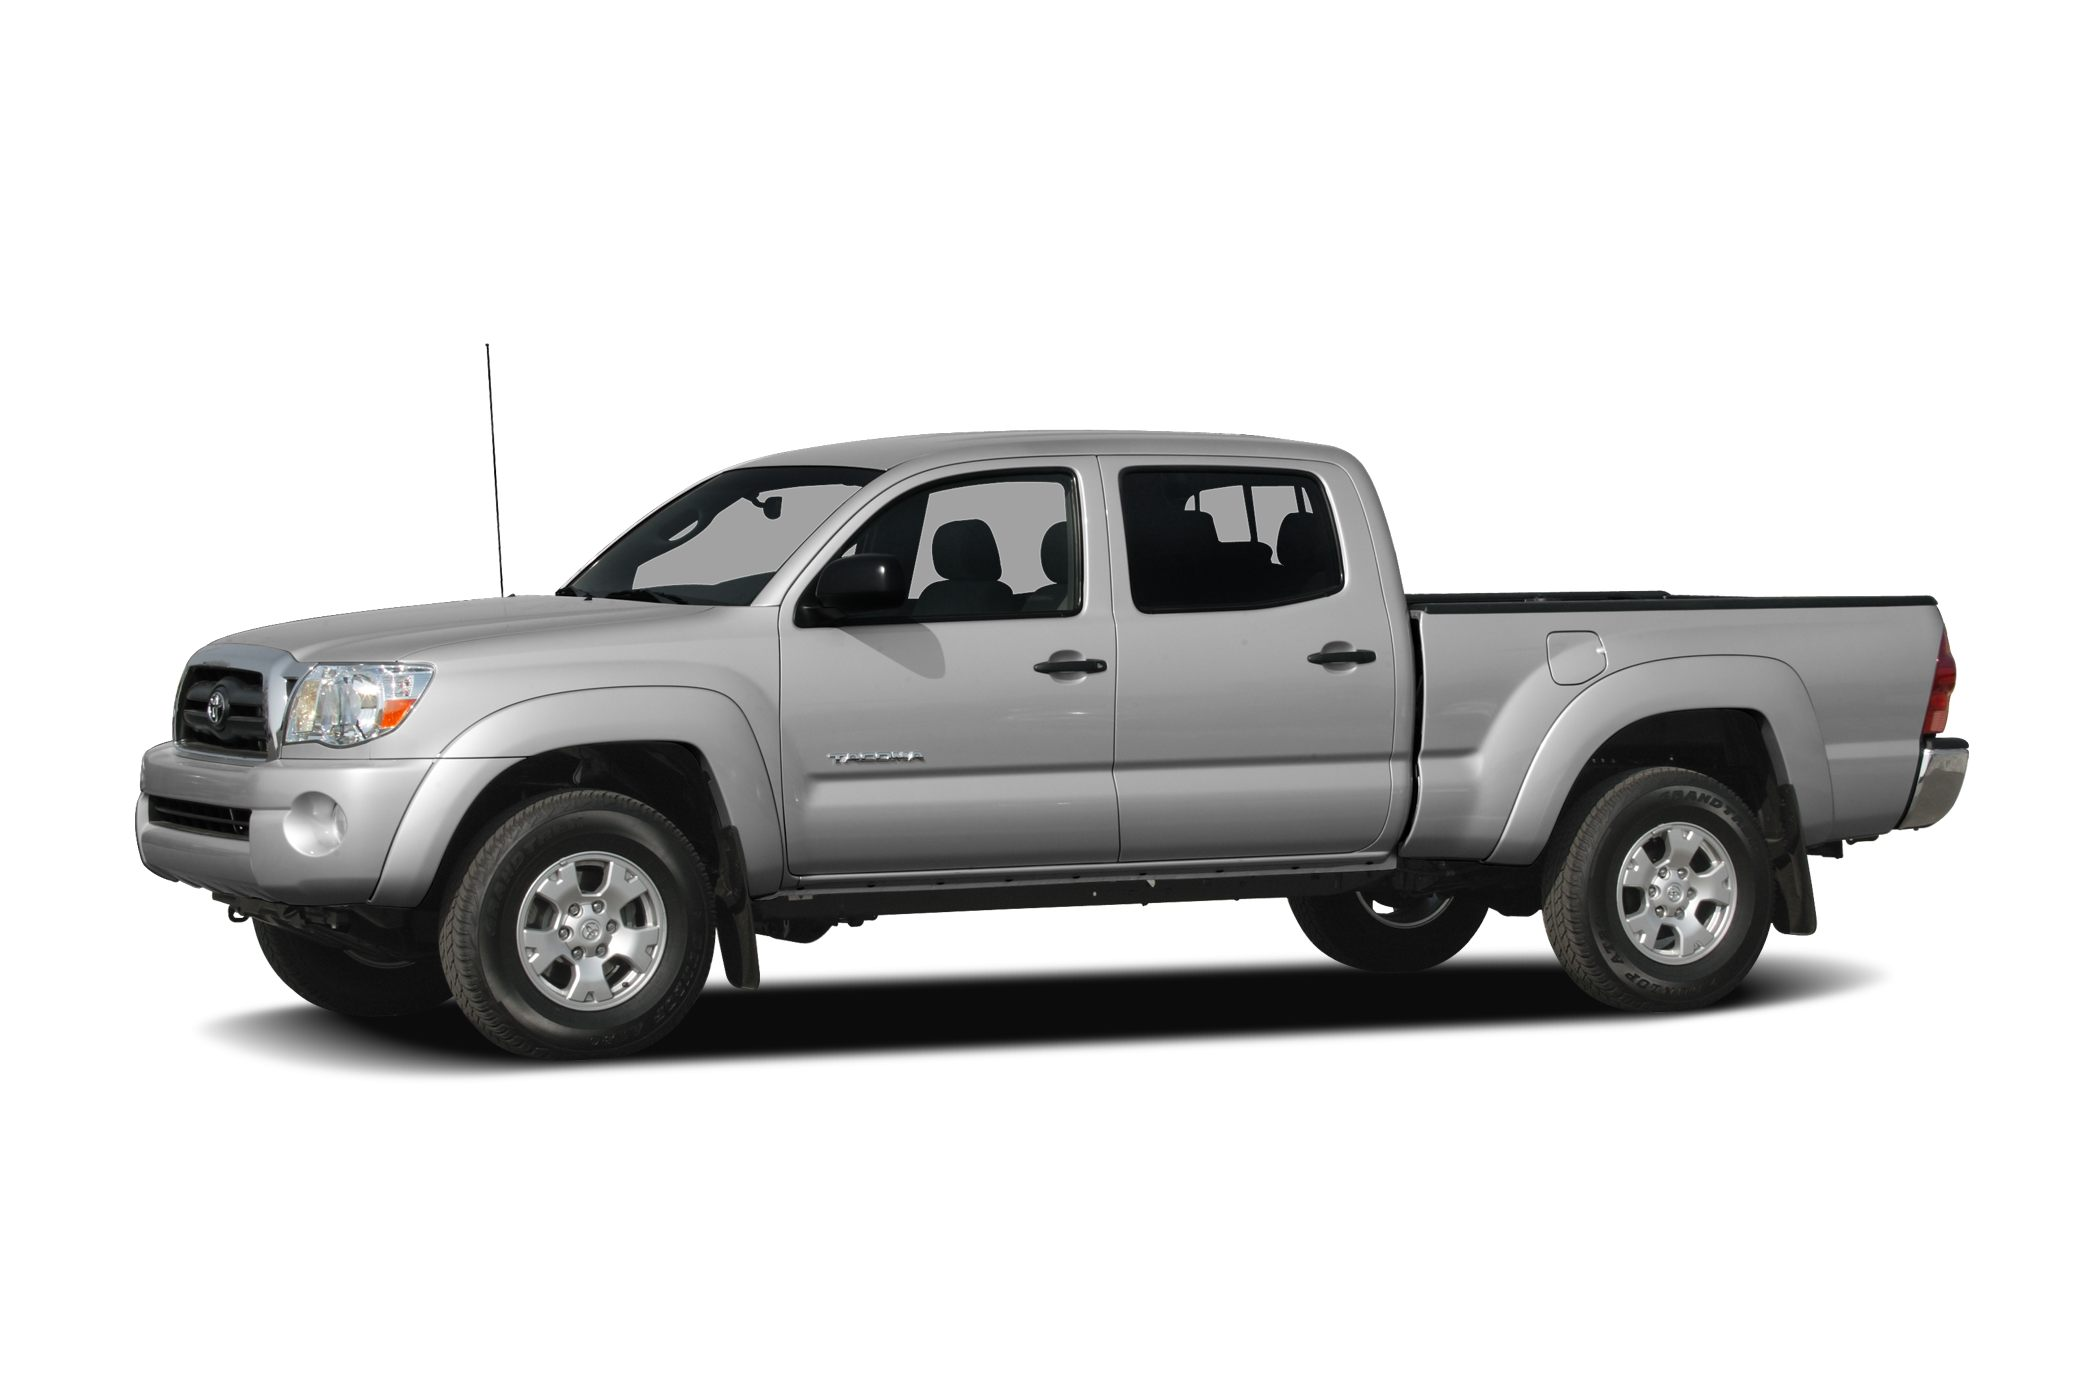 2008 Toyota Tacoma Double Cab Crew Cab Pickup for sale in Yakima for $25,999 with 118,714 miles.